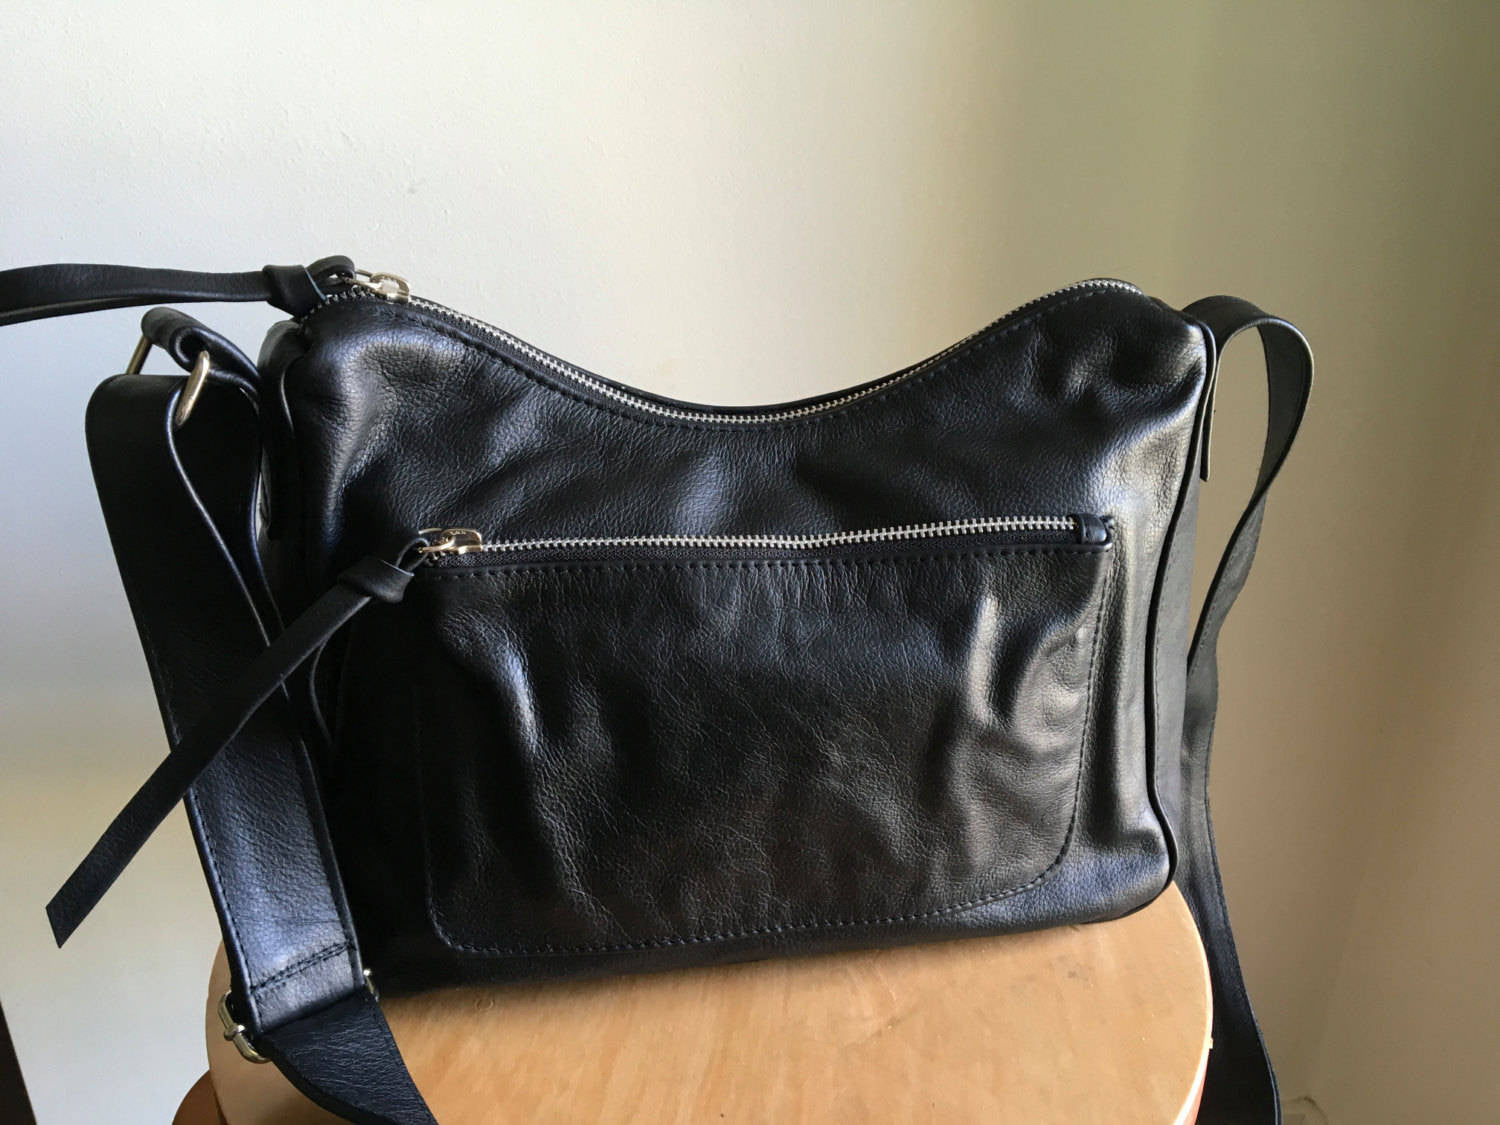 The Mini Sender - Slouchy hobo style handmade bag with wide crossbody strap